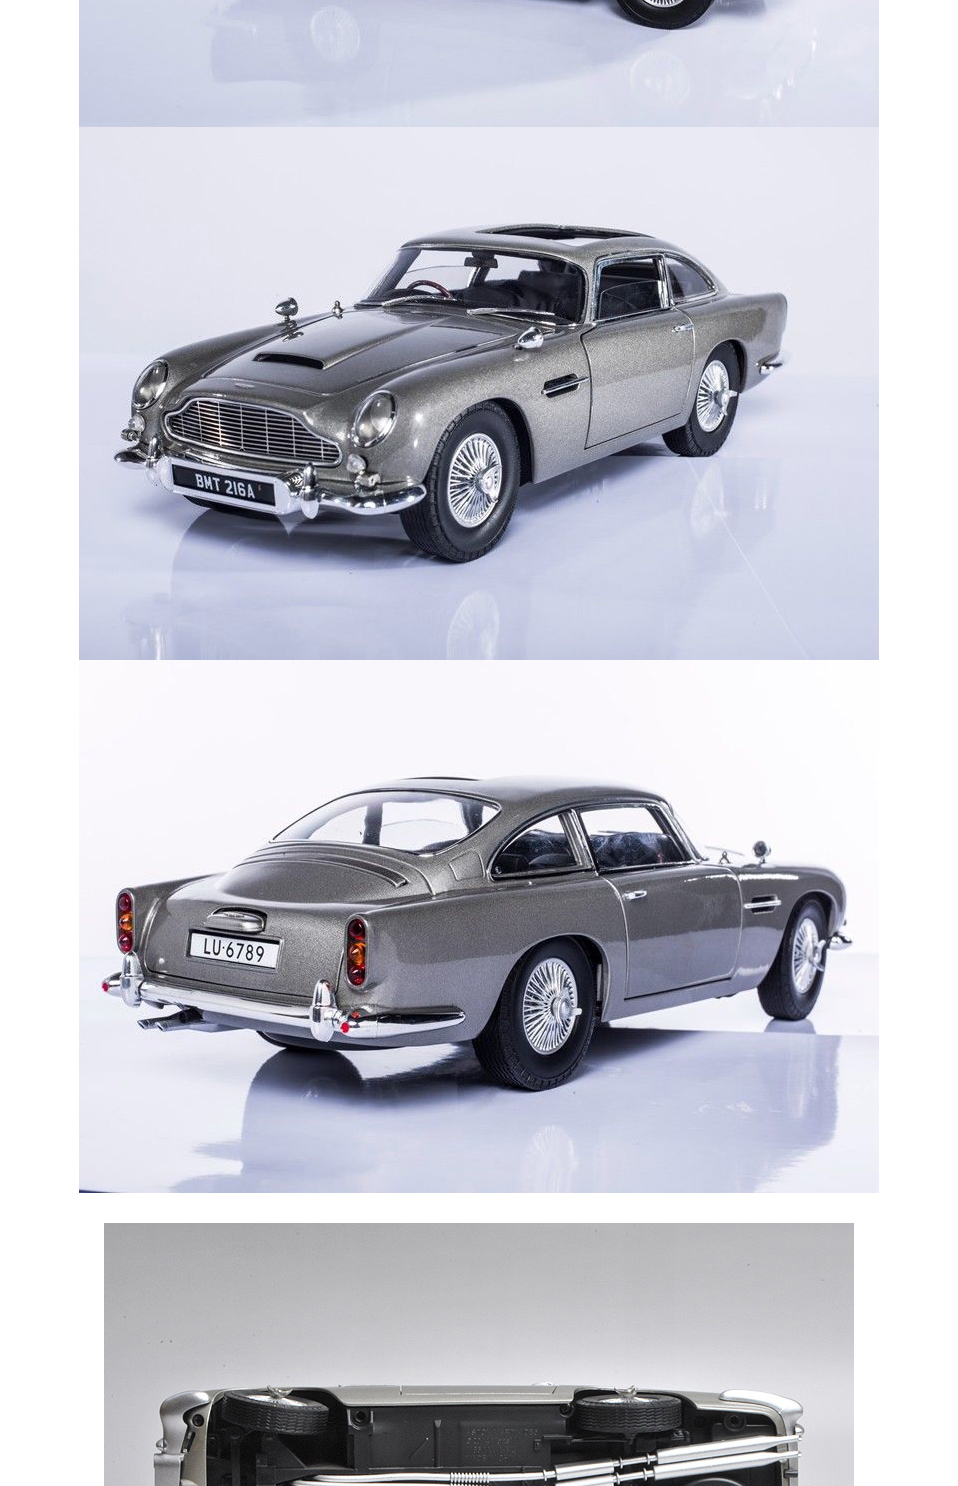 1 18 scale car models 2-4 Years james bond 007 collectables Aston Matin DB5 Diecasts & Toy Vehicles Model Toys For Gifts (9)